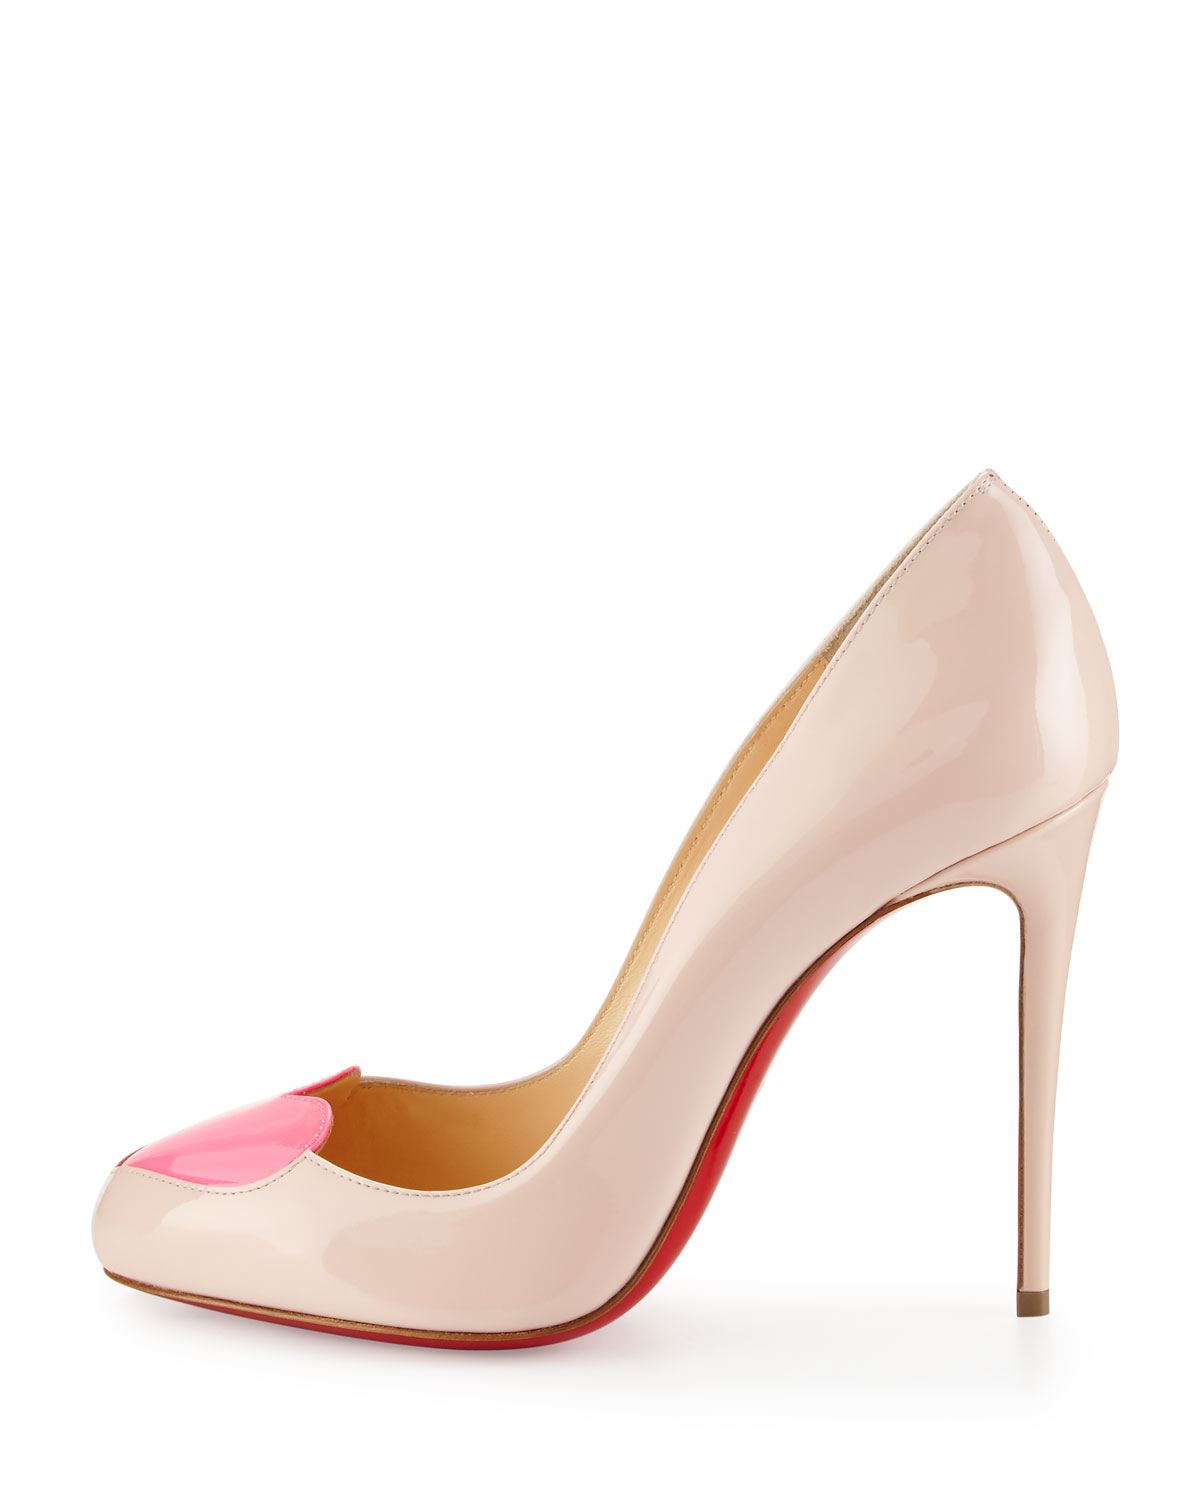 christian louboutin shoes with heart